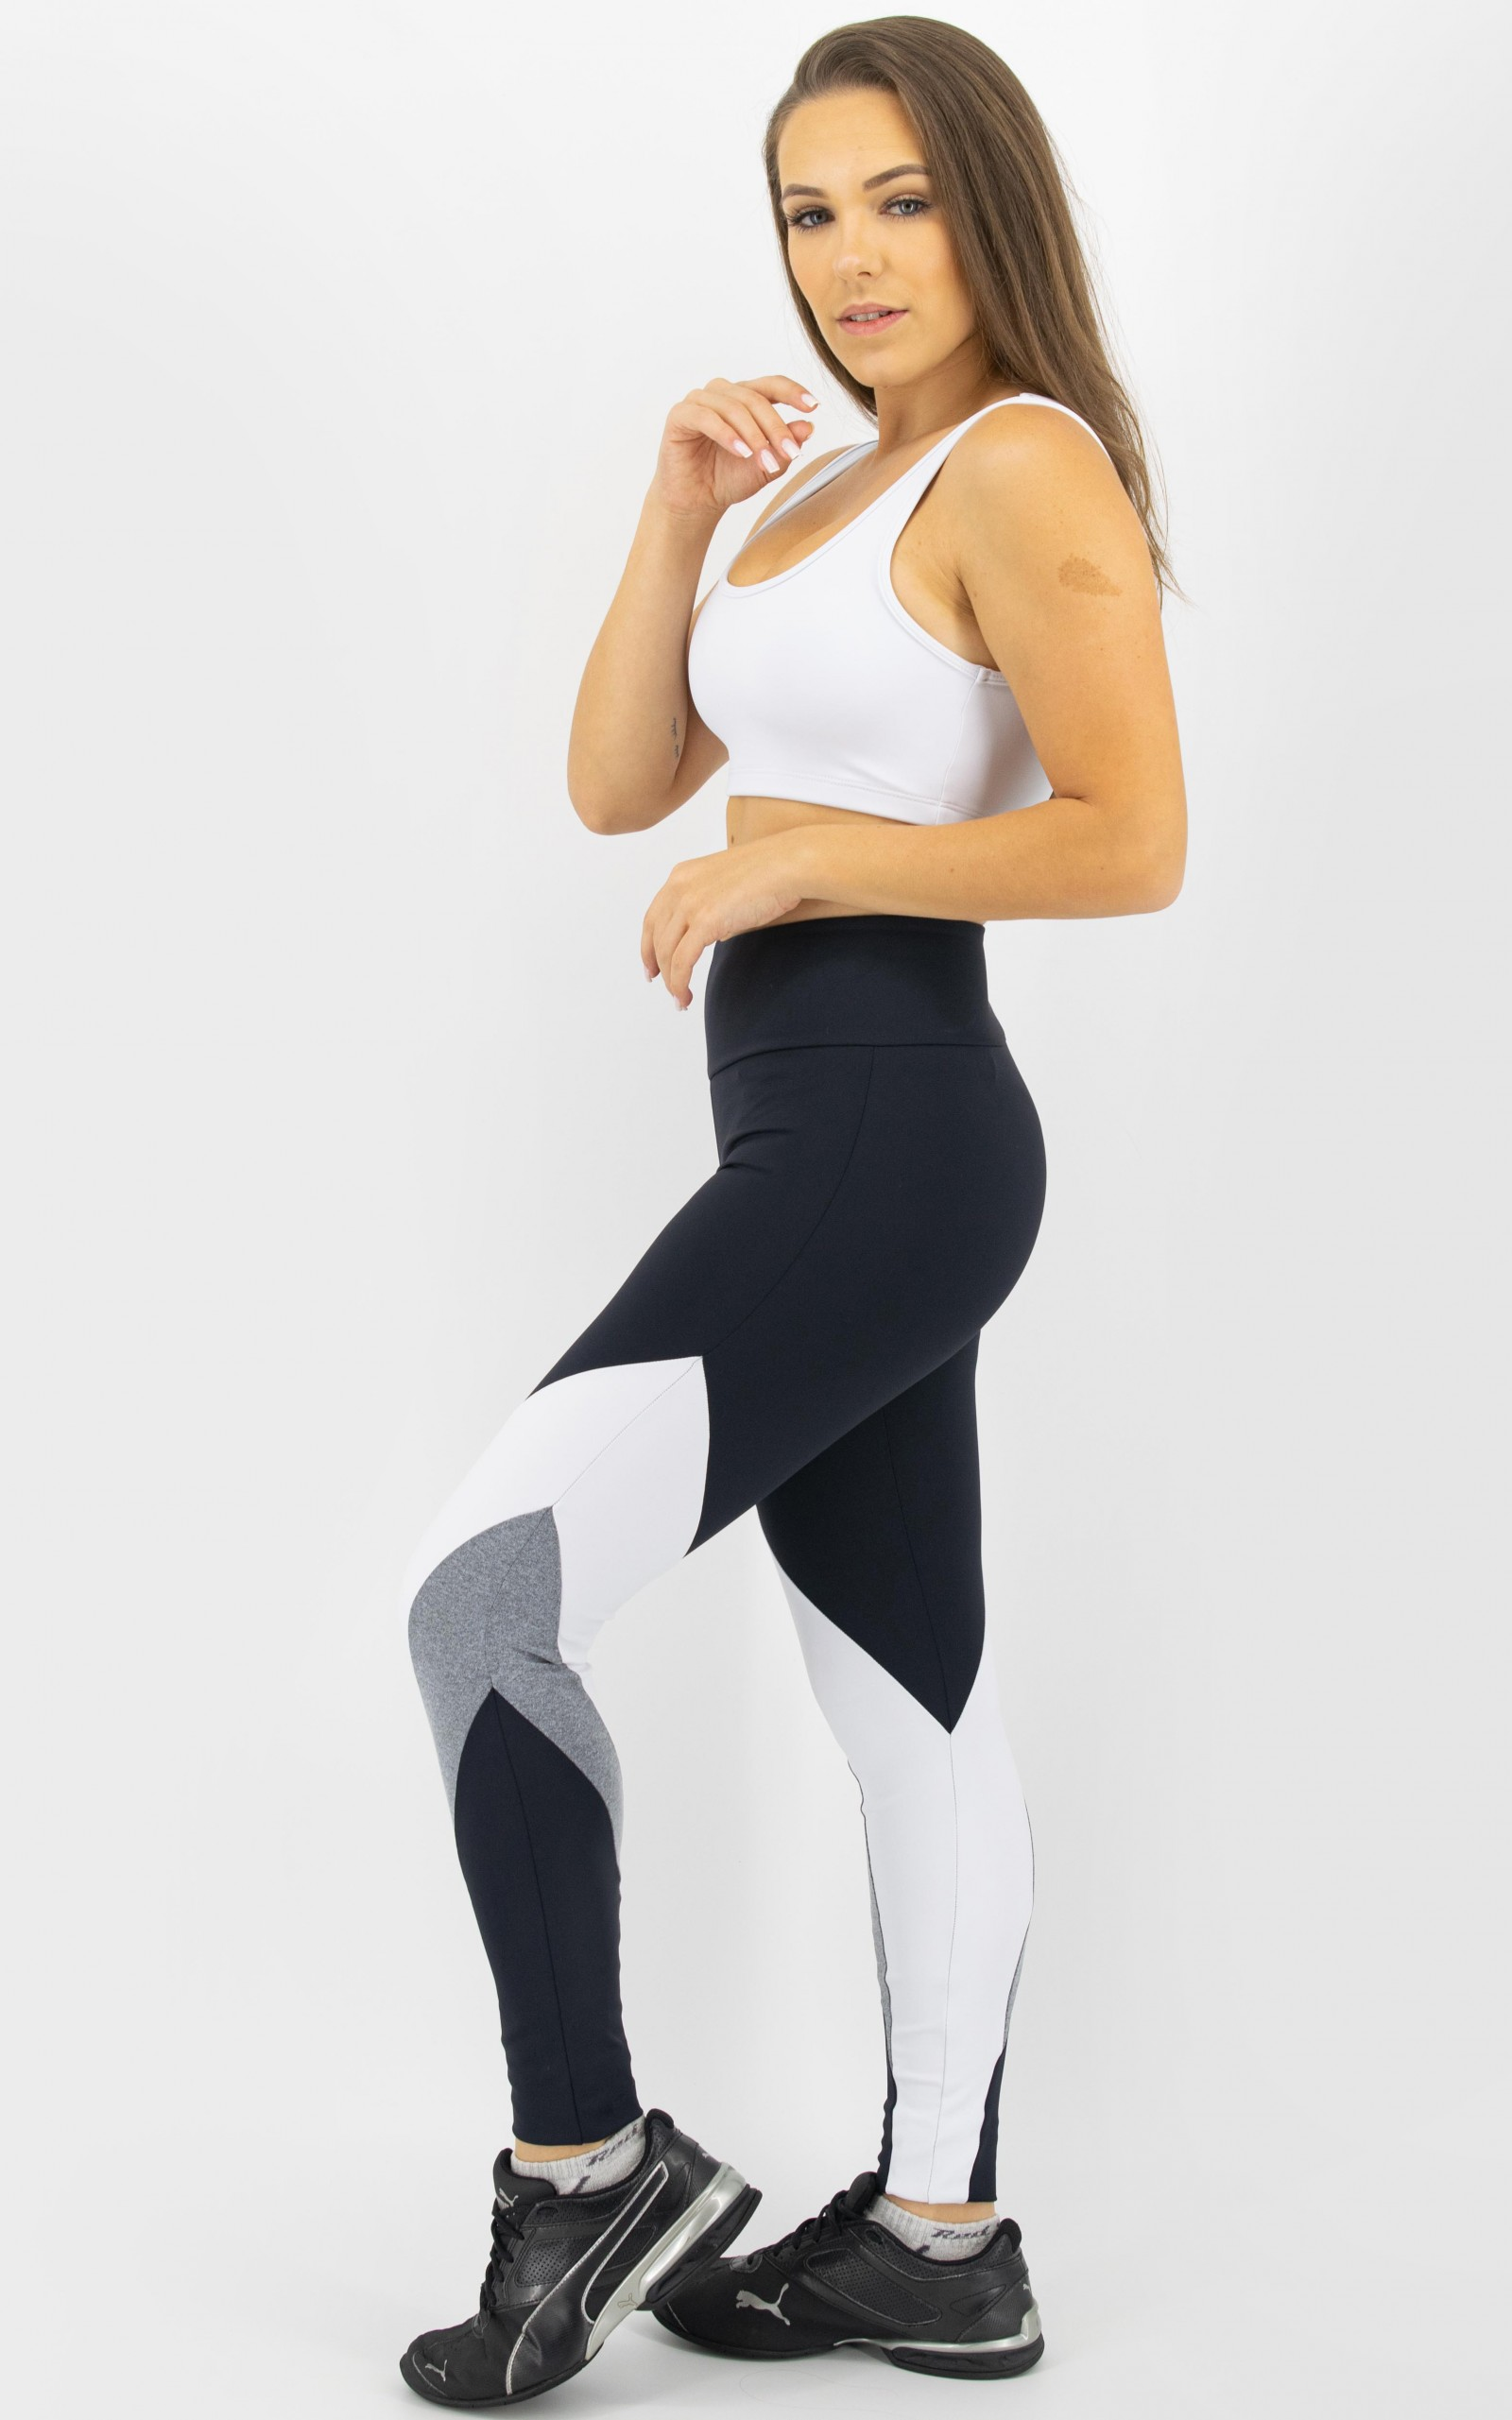 Top Arrow Branco, Coleção Move Your Body - NKT Fitwear Moda Fitness